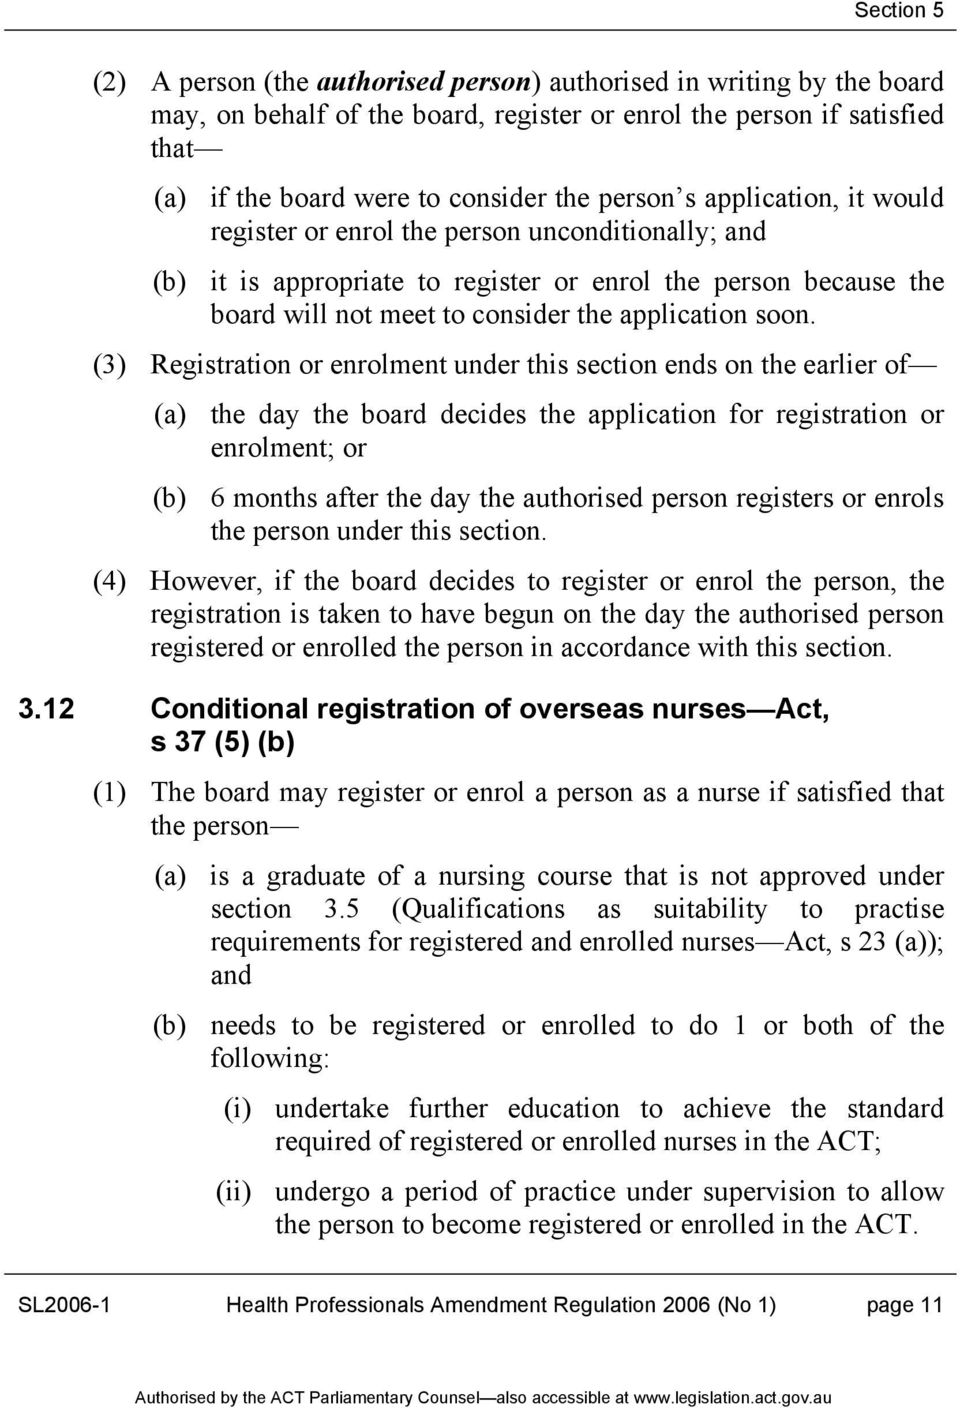 (3) Registration or enrolment under this section ends on the earlier of (a) the day the board decides the application for registration or enrolment; or (b) 6 months after the day the authorised